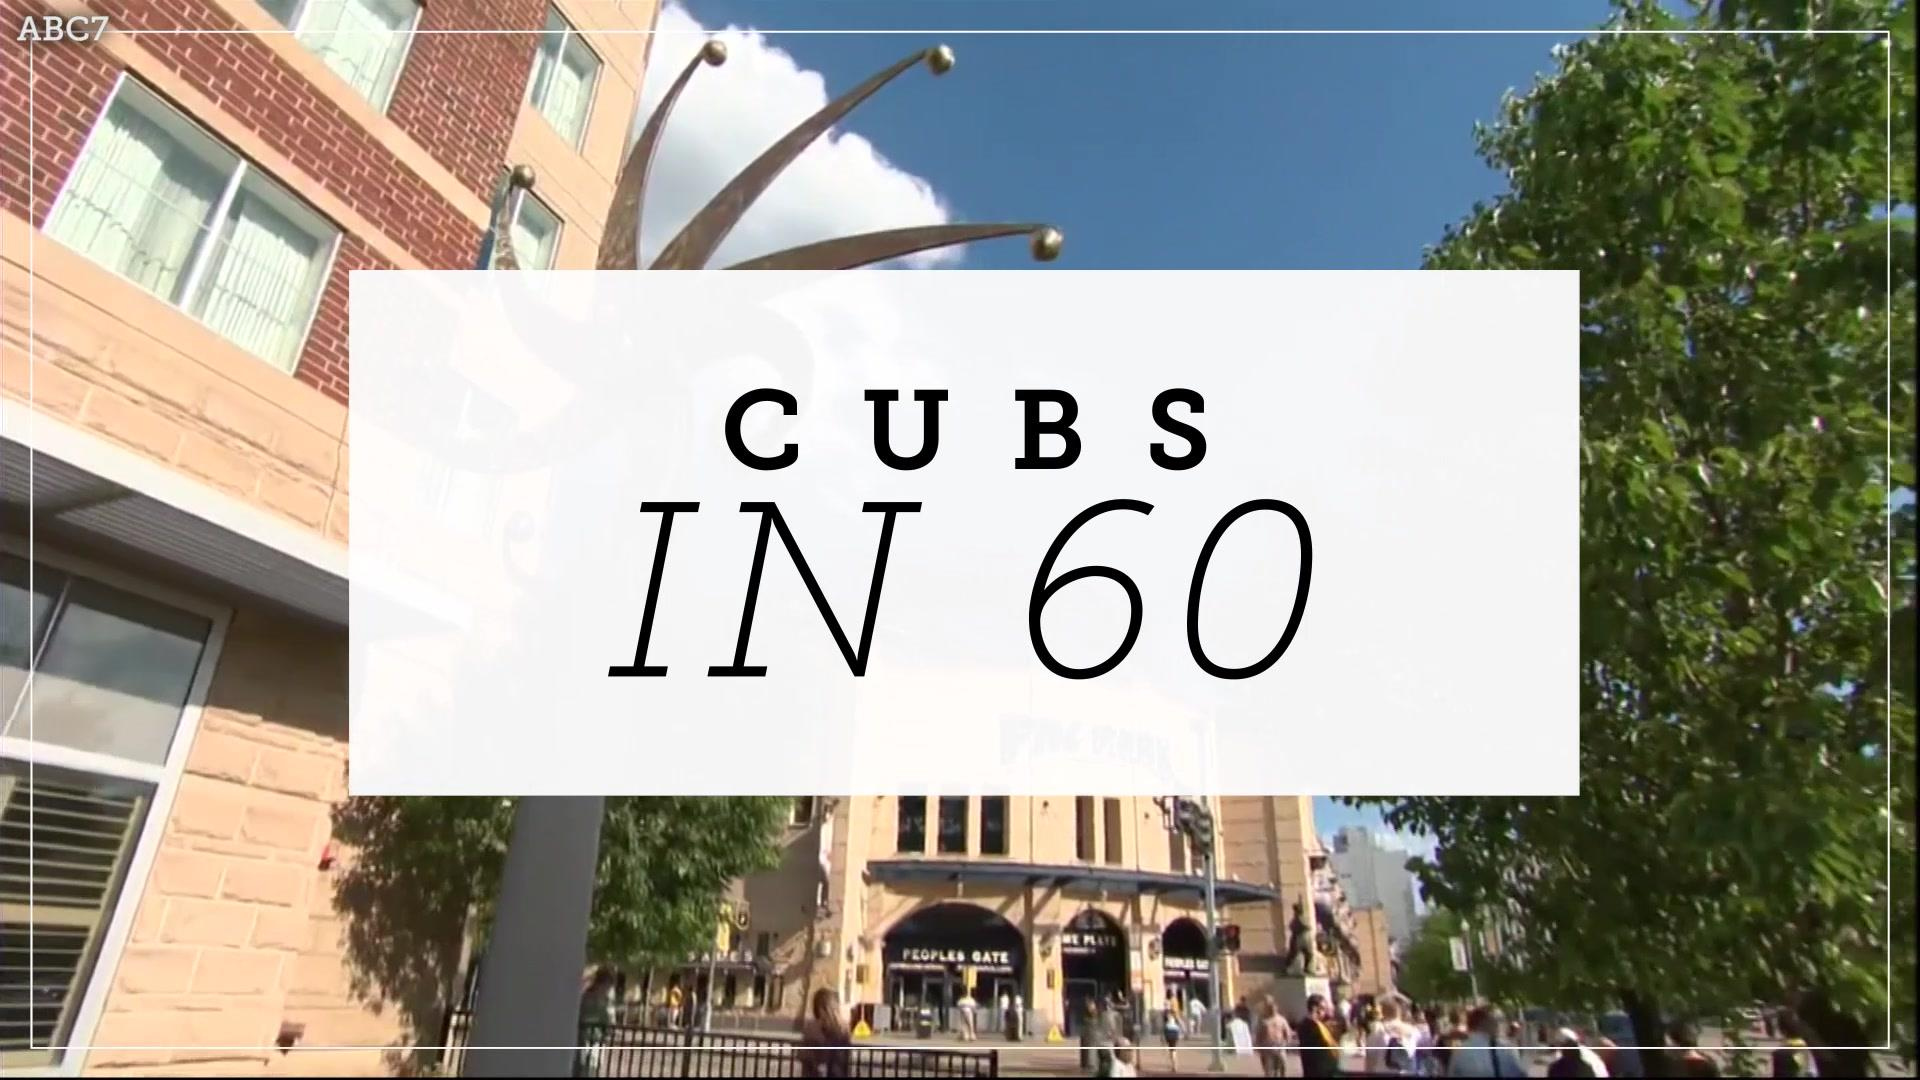 Cubs in 60 : Cubs snap 4-game losing streak behind Lester